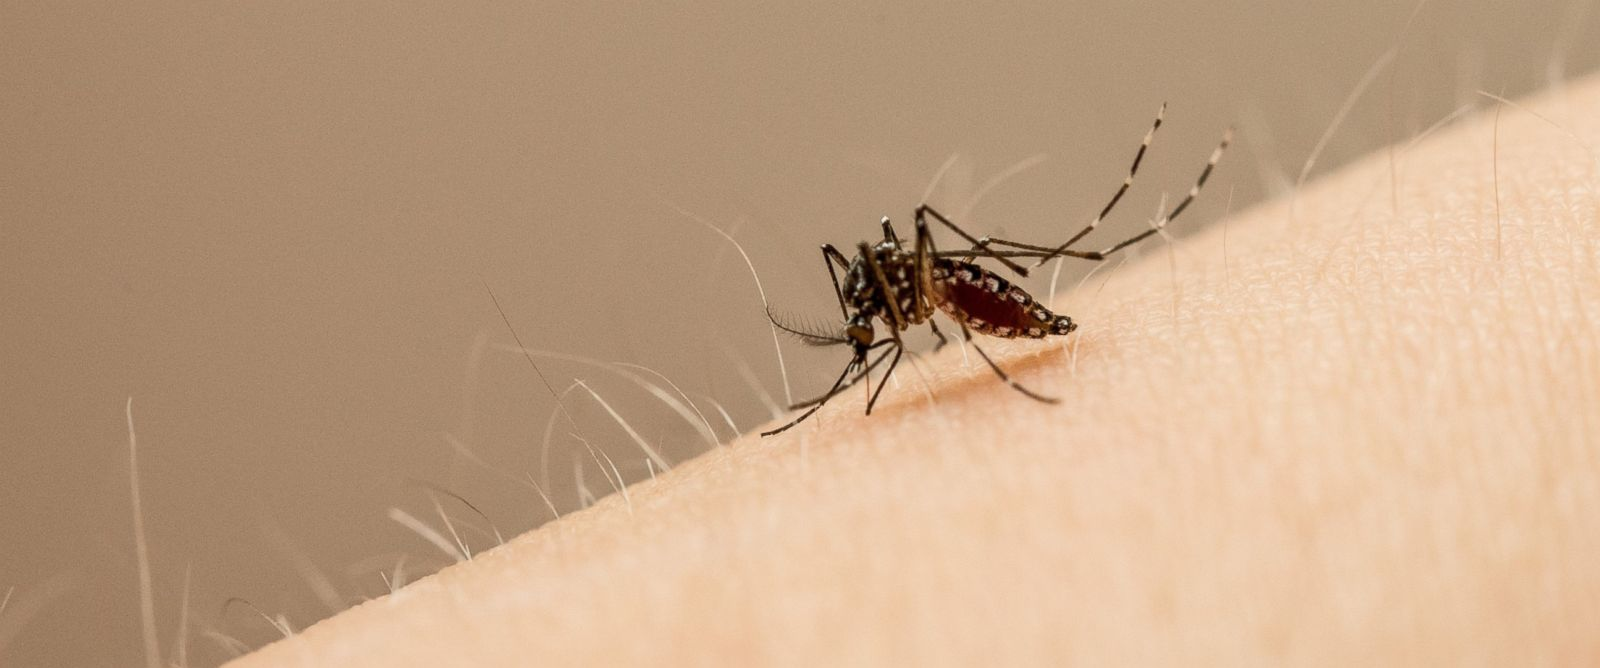 PHOTO: Scientists discovered mosquitoes may be able to transmit multiple viruses at once.